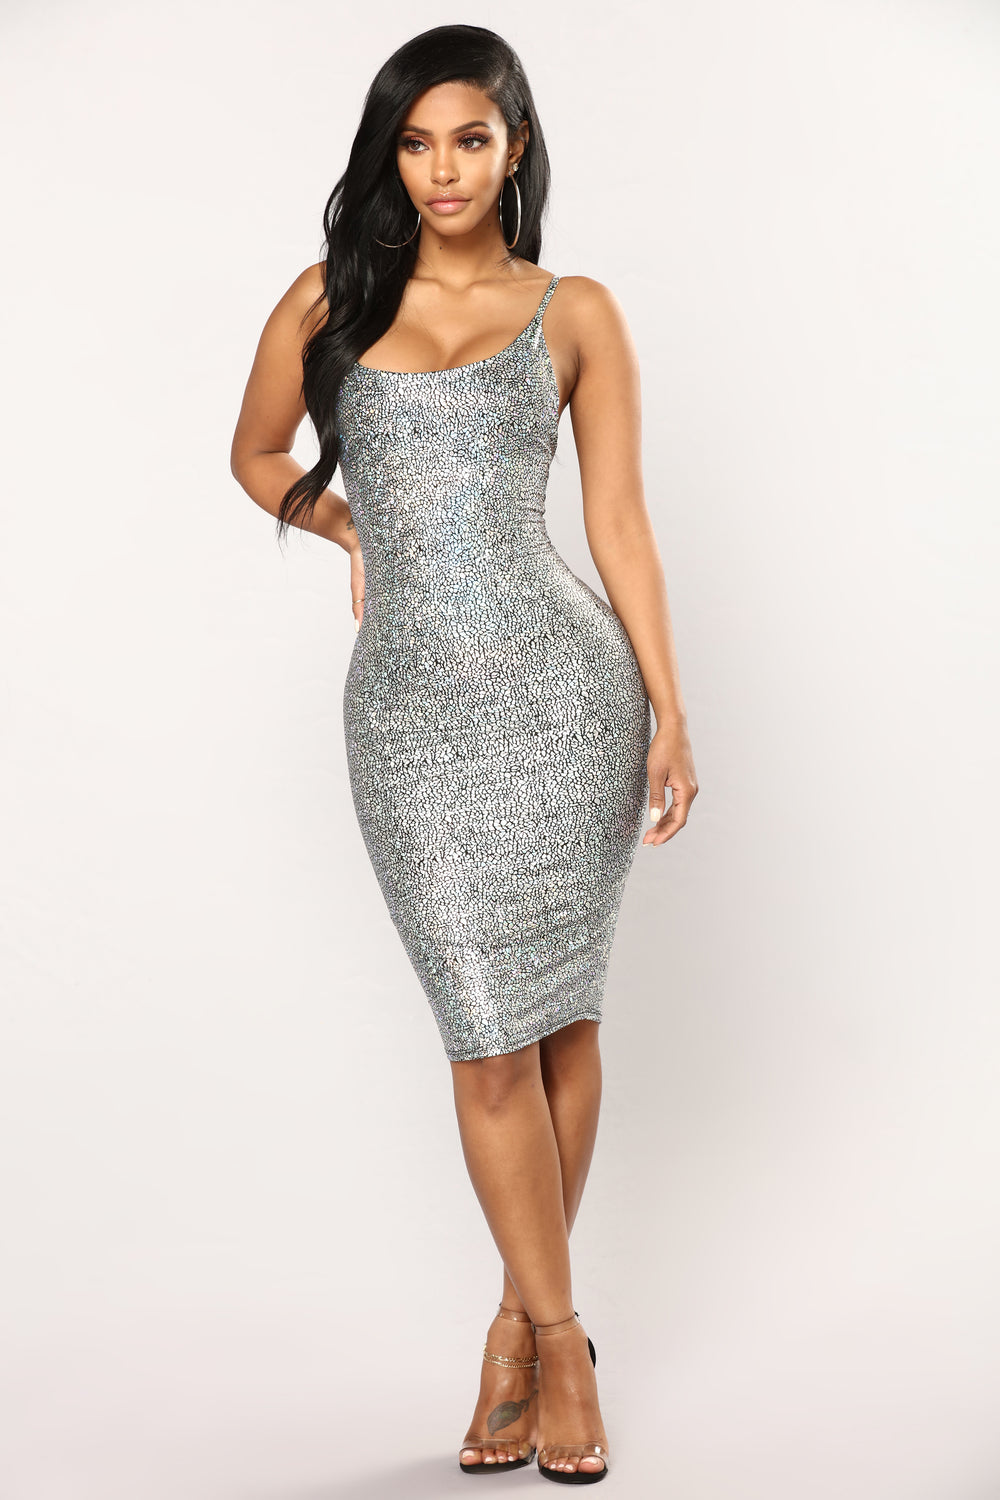 My Pebbles Dress - Silver